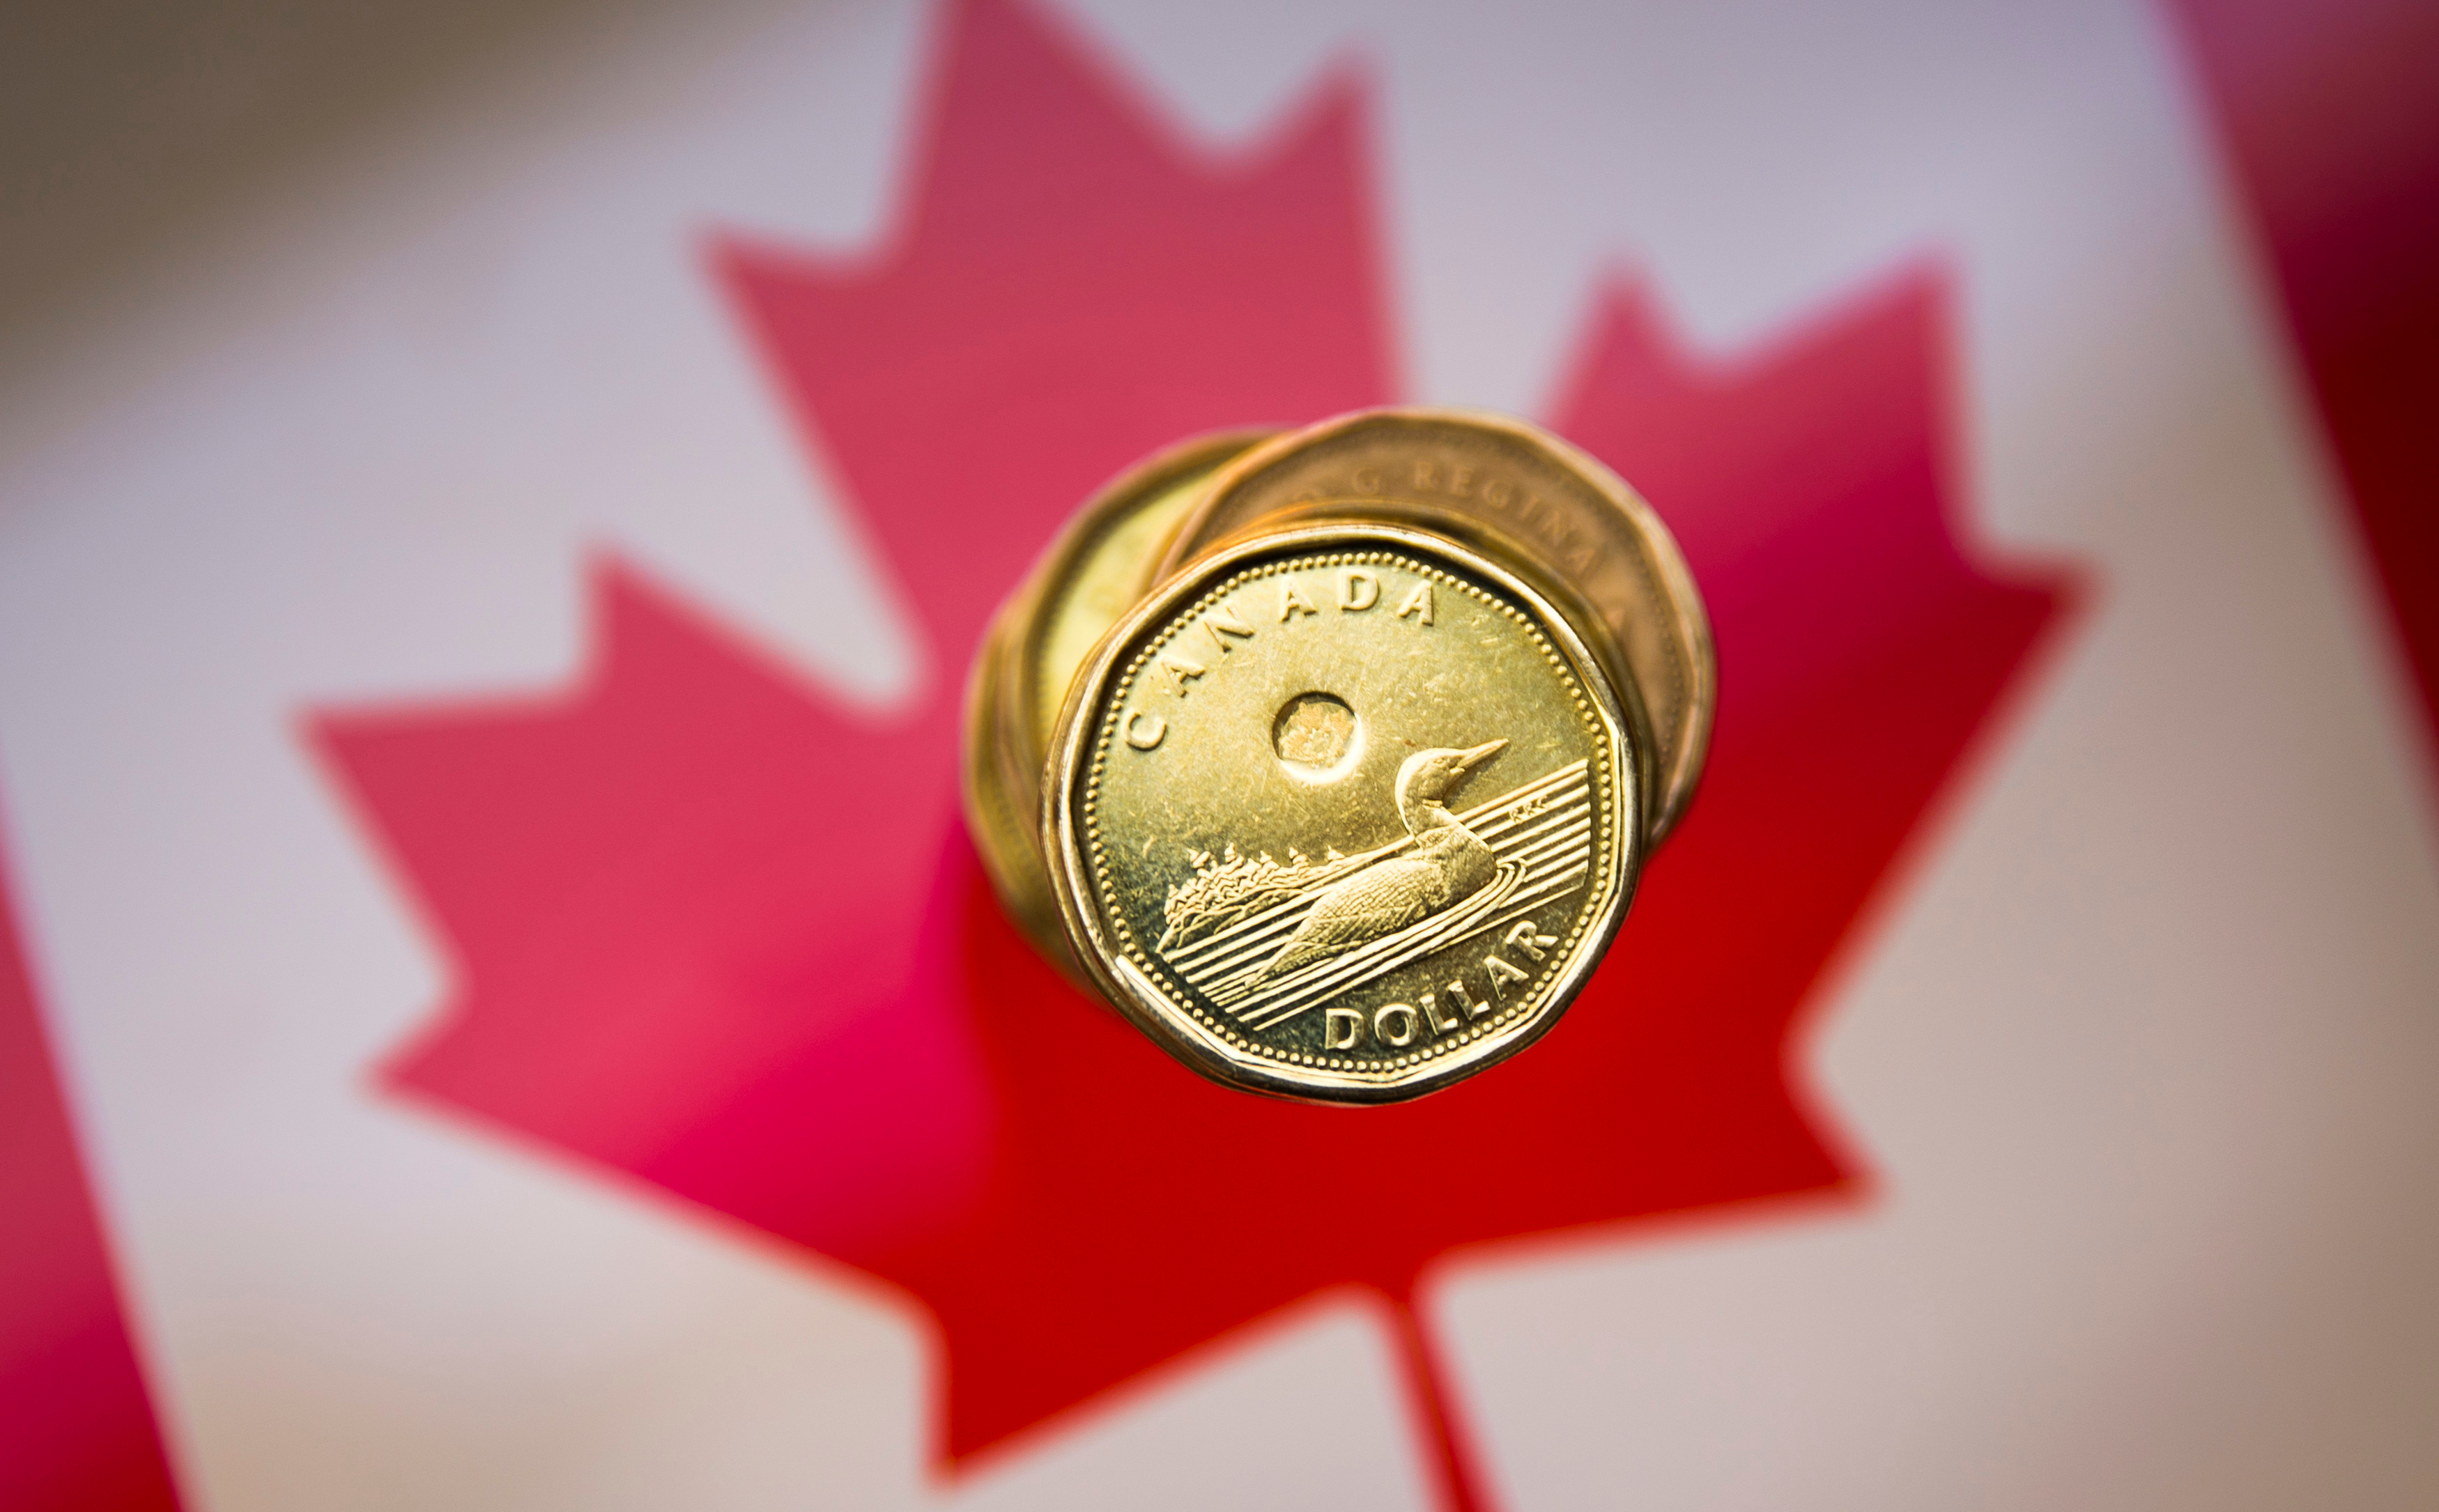 Canada's annual pace of inflation jumps to 2.2% in March